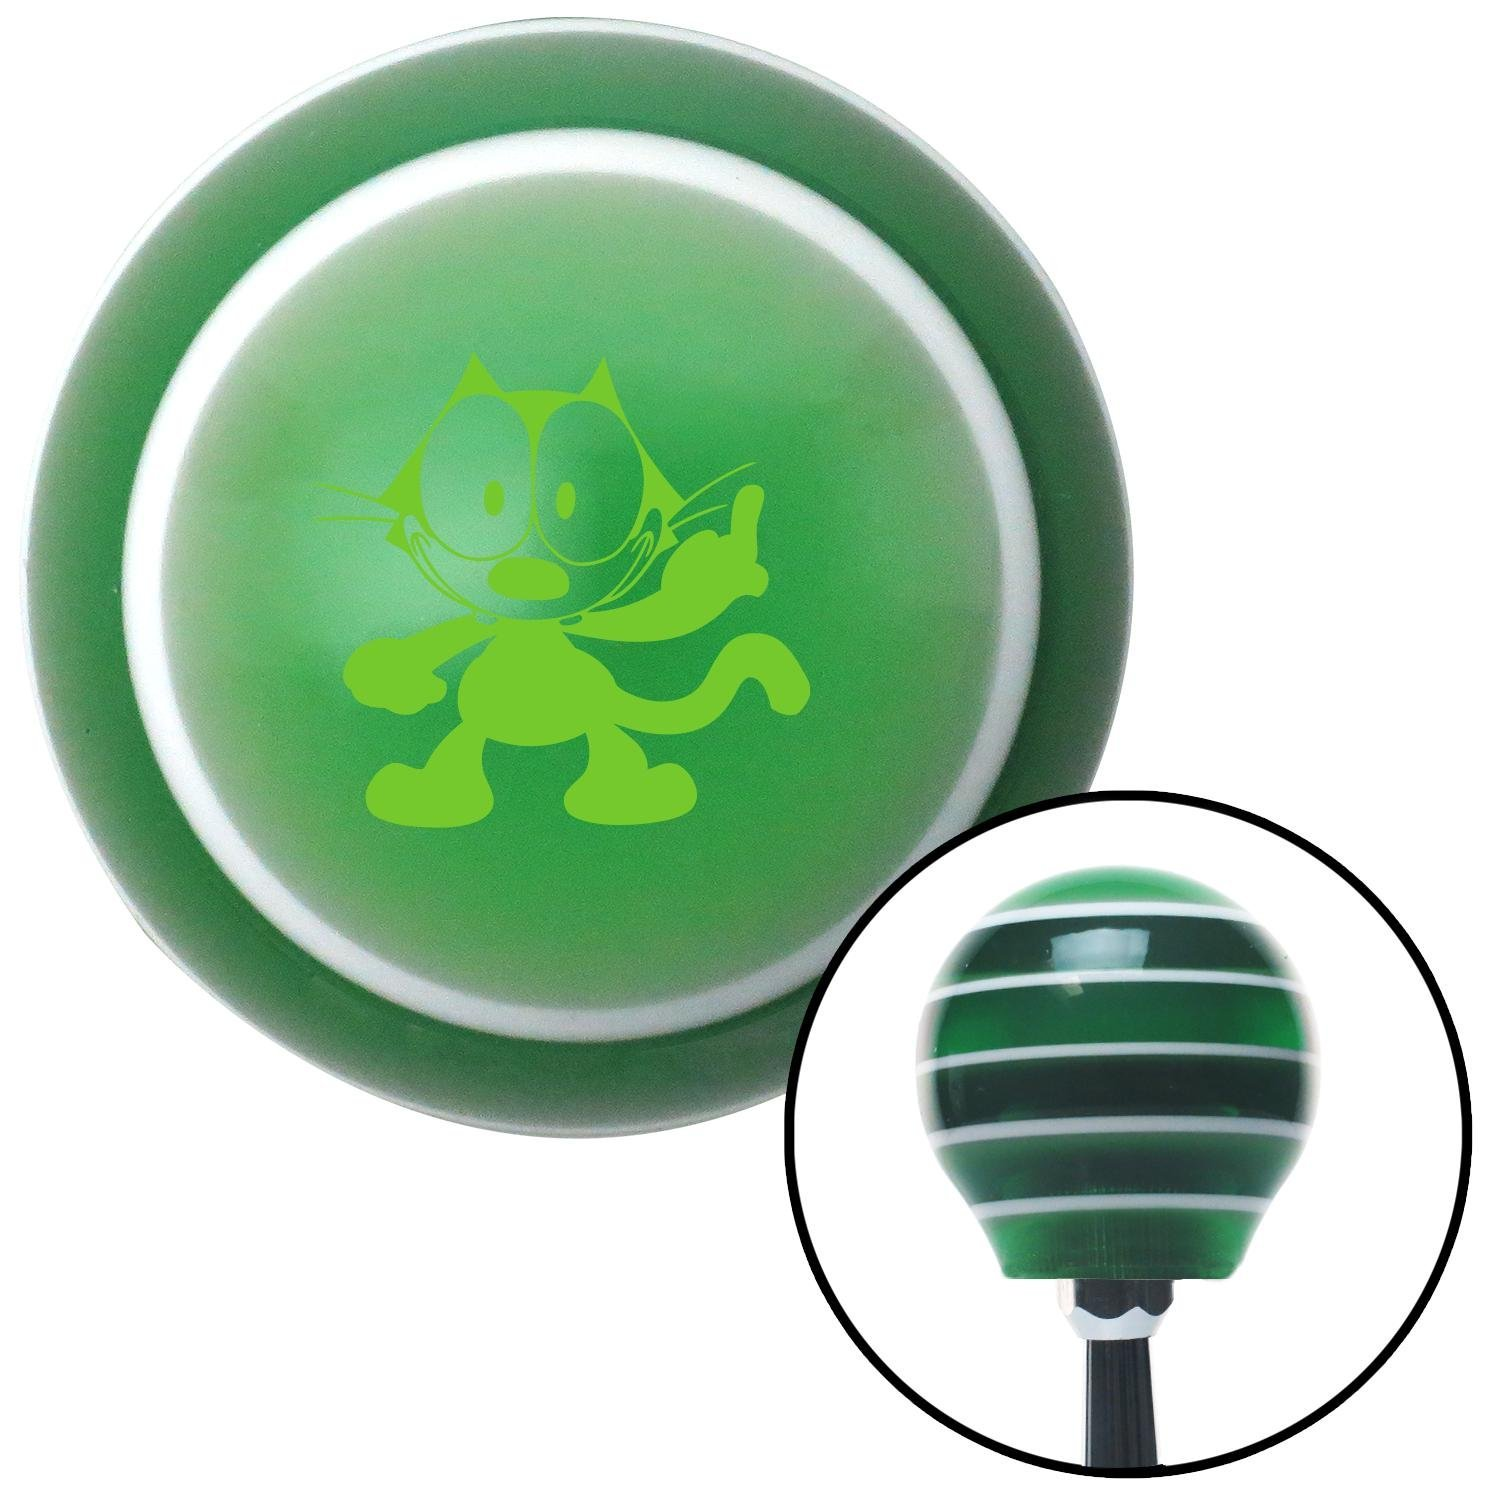 American Shifter 265259 Green Flame Metal Flake Shift Knob with M16 x 1.5 Insert Orange Target w//Splatter